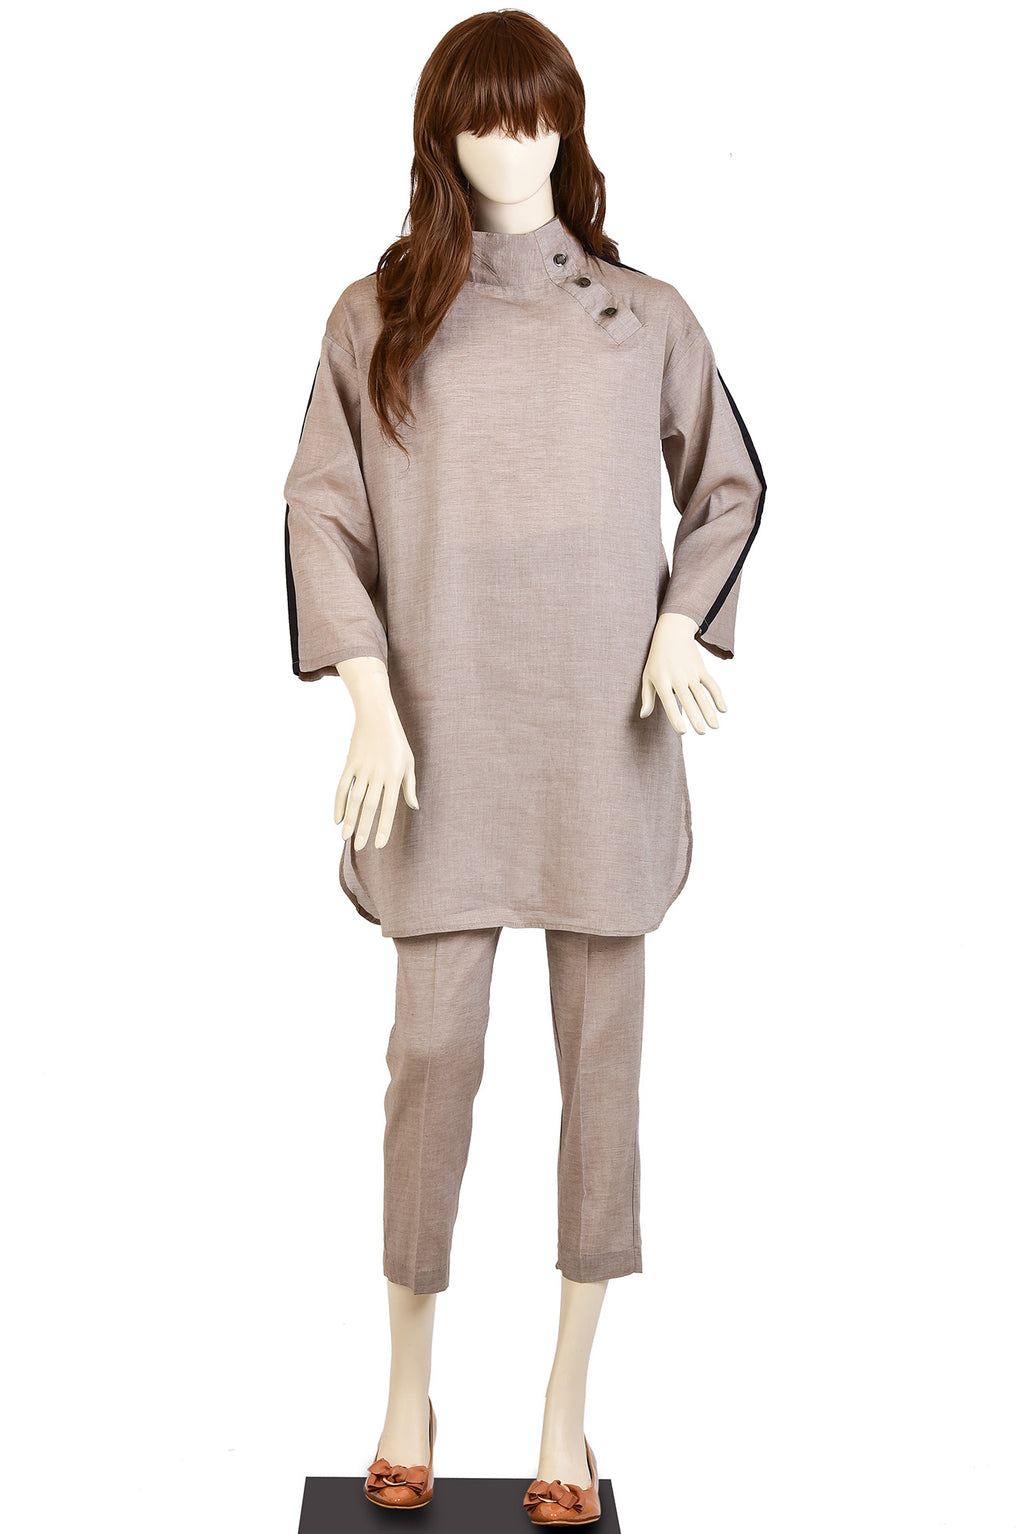 products/SP-308_BROWN_FRONT.jpg